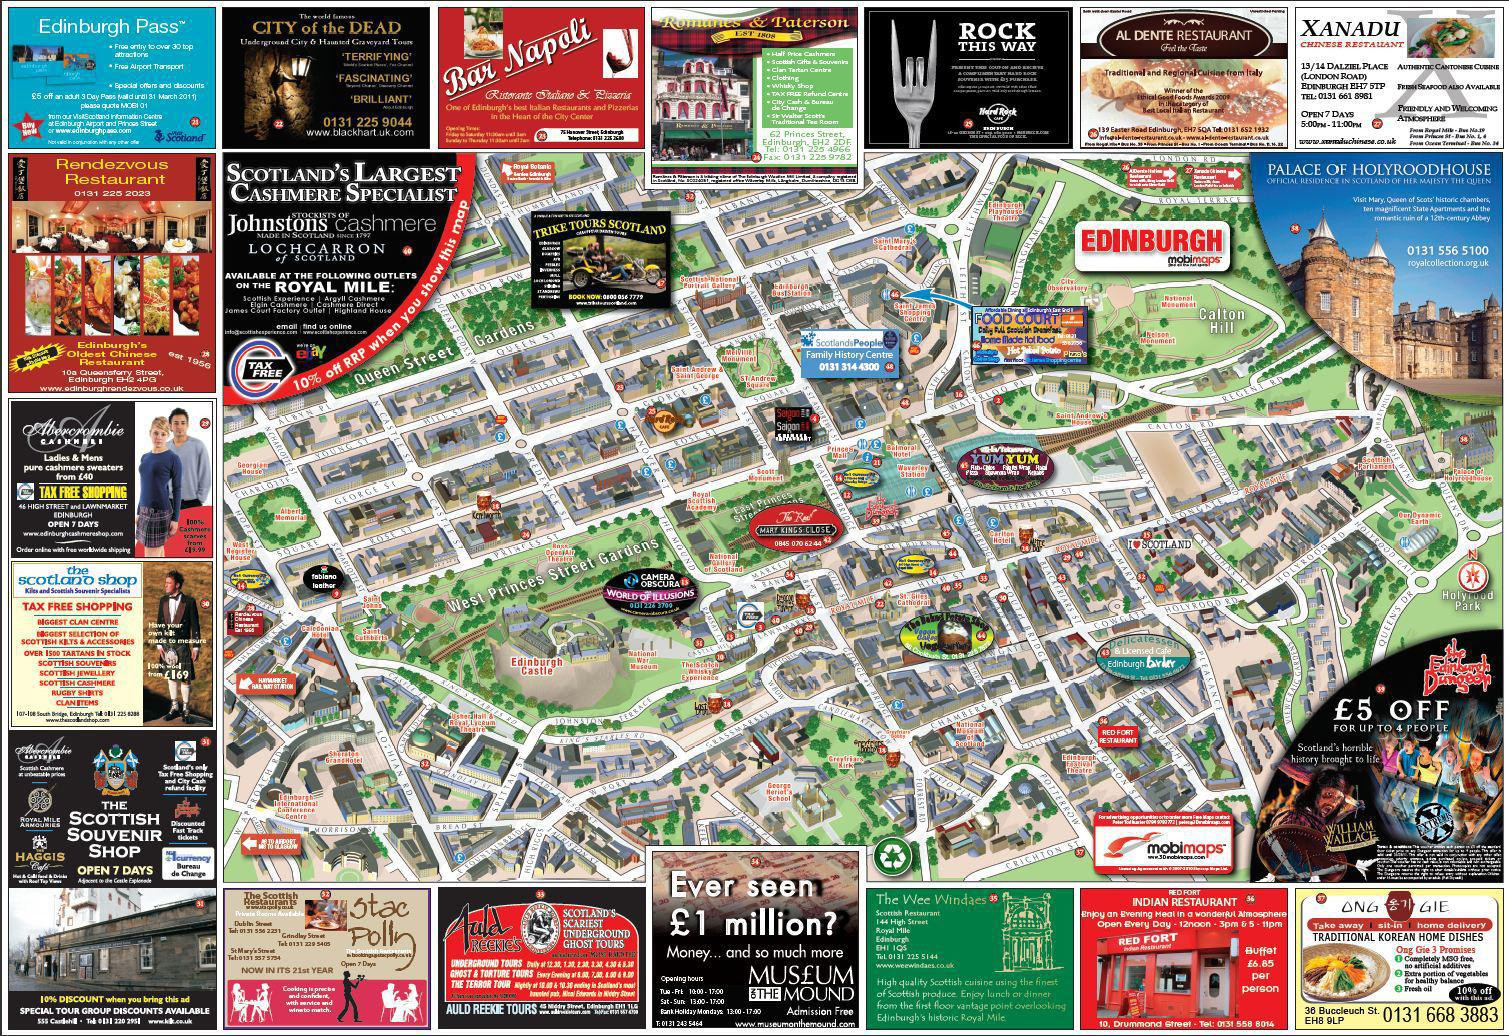 Printable Map Edinburgh City Centre Lovely Manchester City Centre Tourist Map [hd ] Wallpaper For